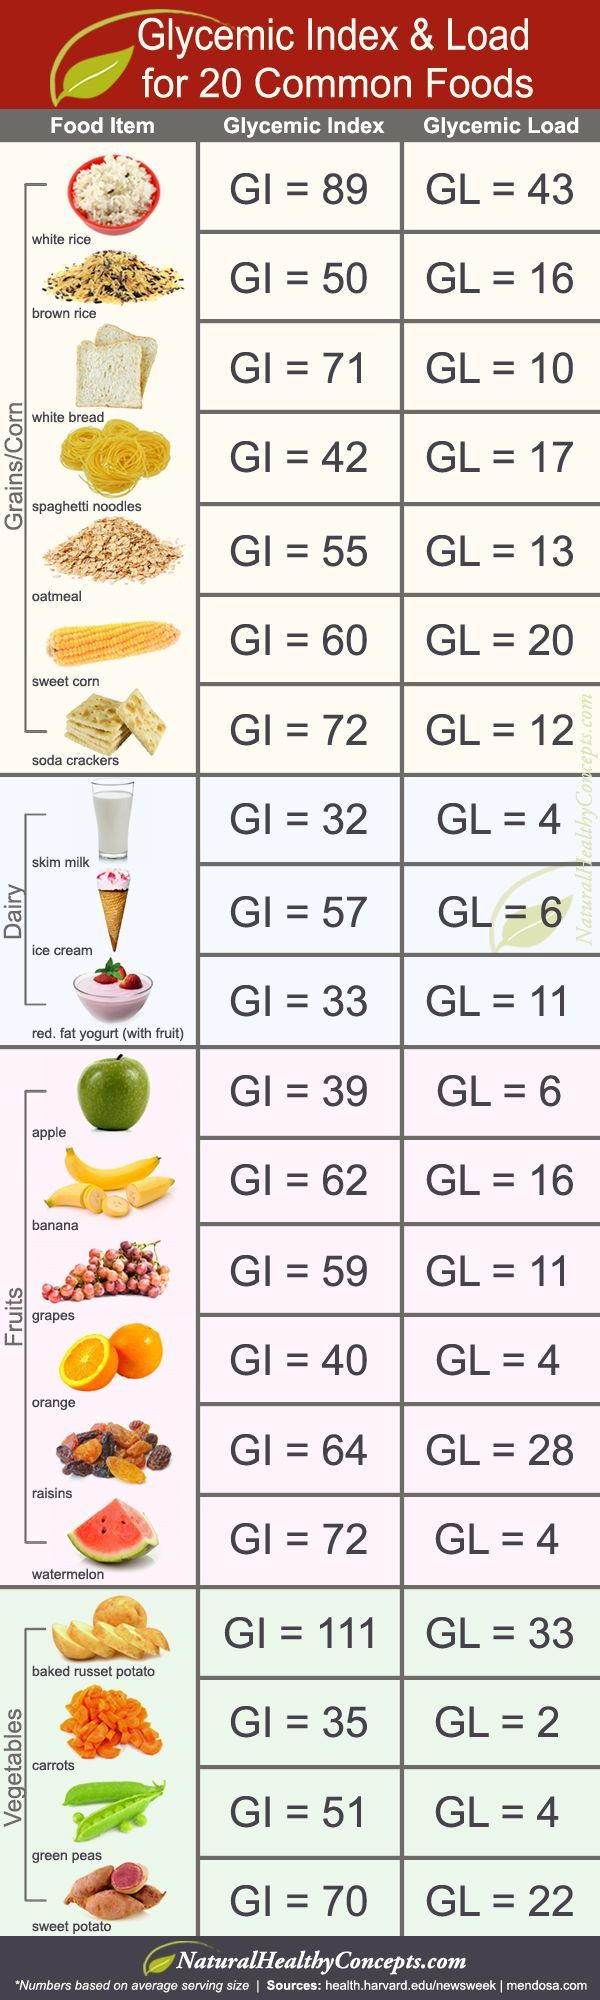 Forum on this topic: What Is The Glycemic Index And How , what-is-the-glycemic-index-and-how/